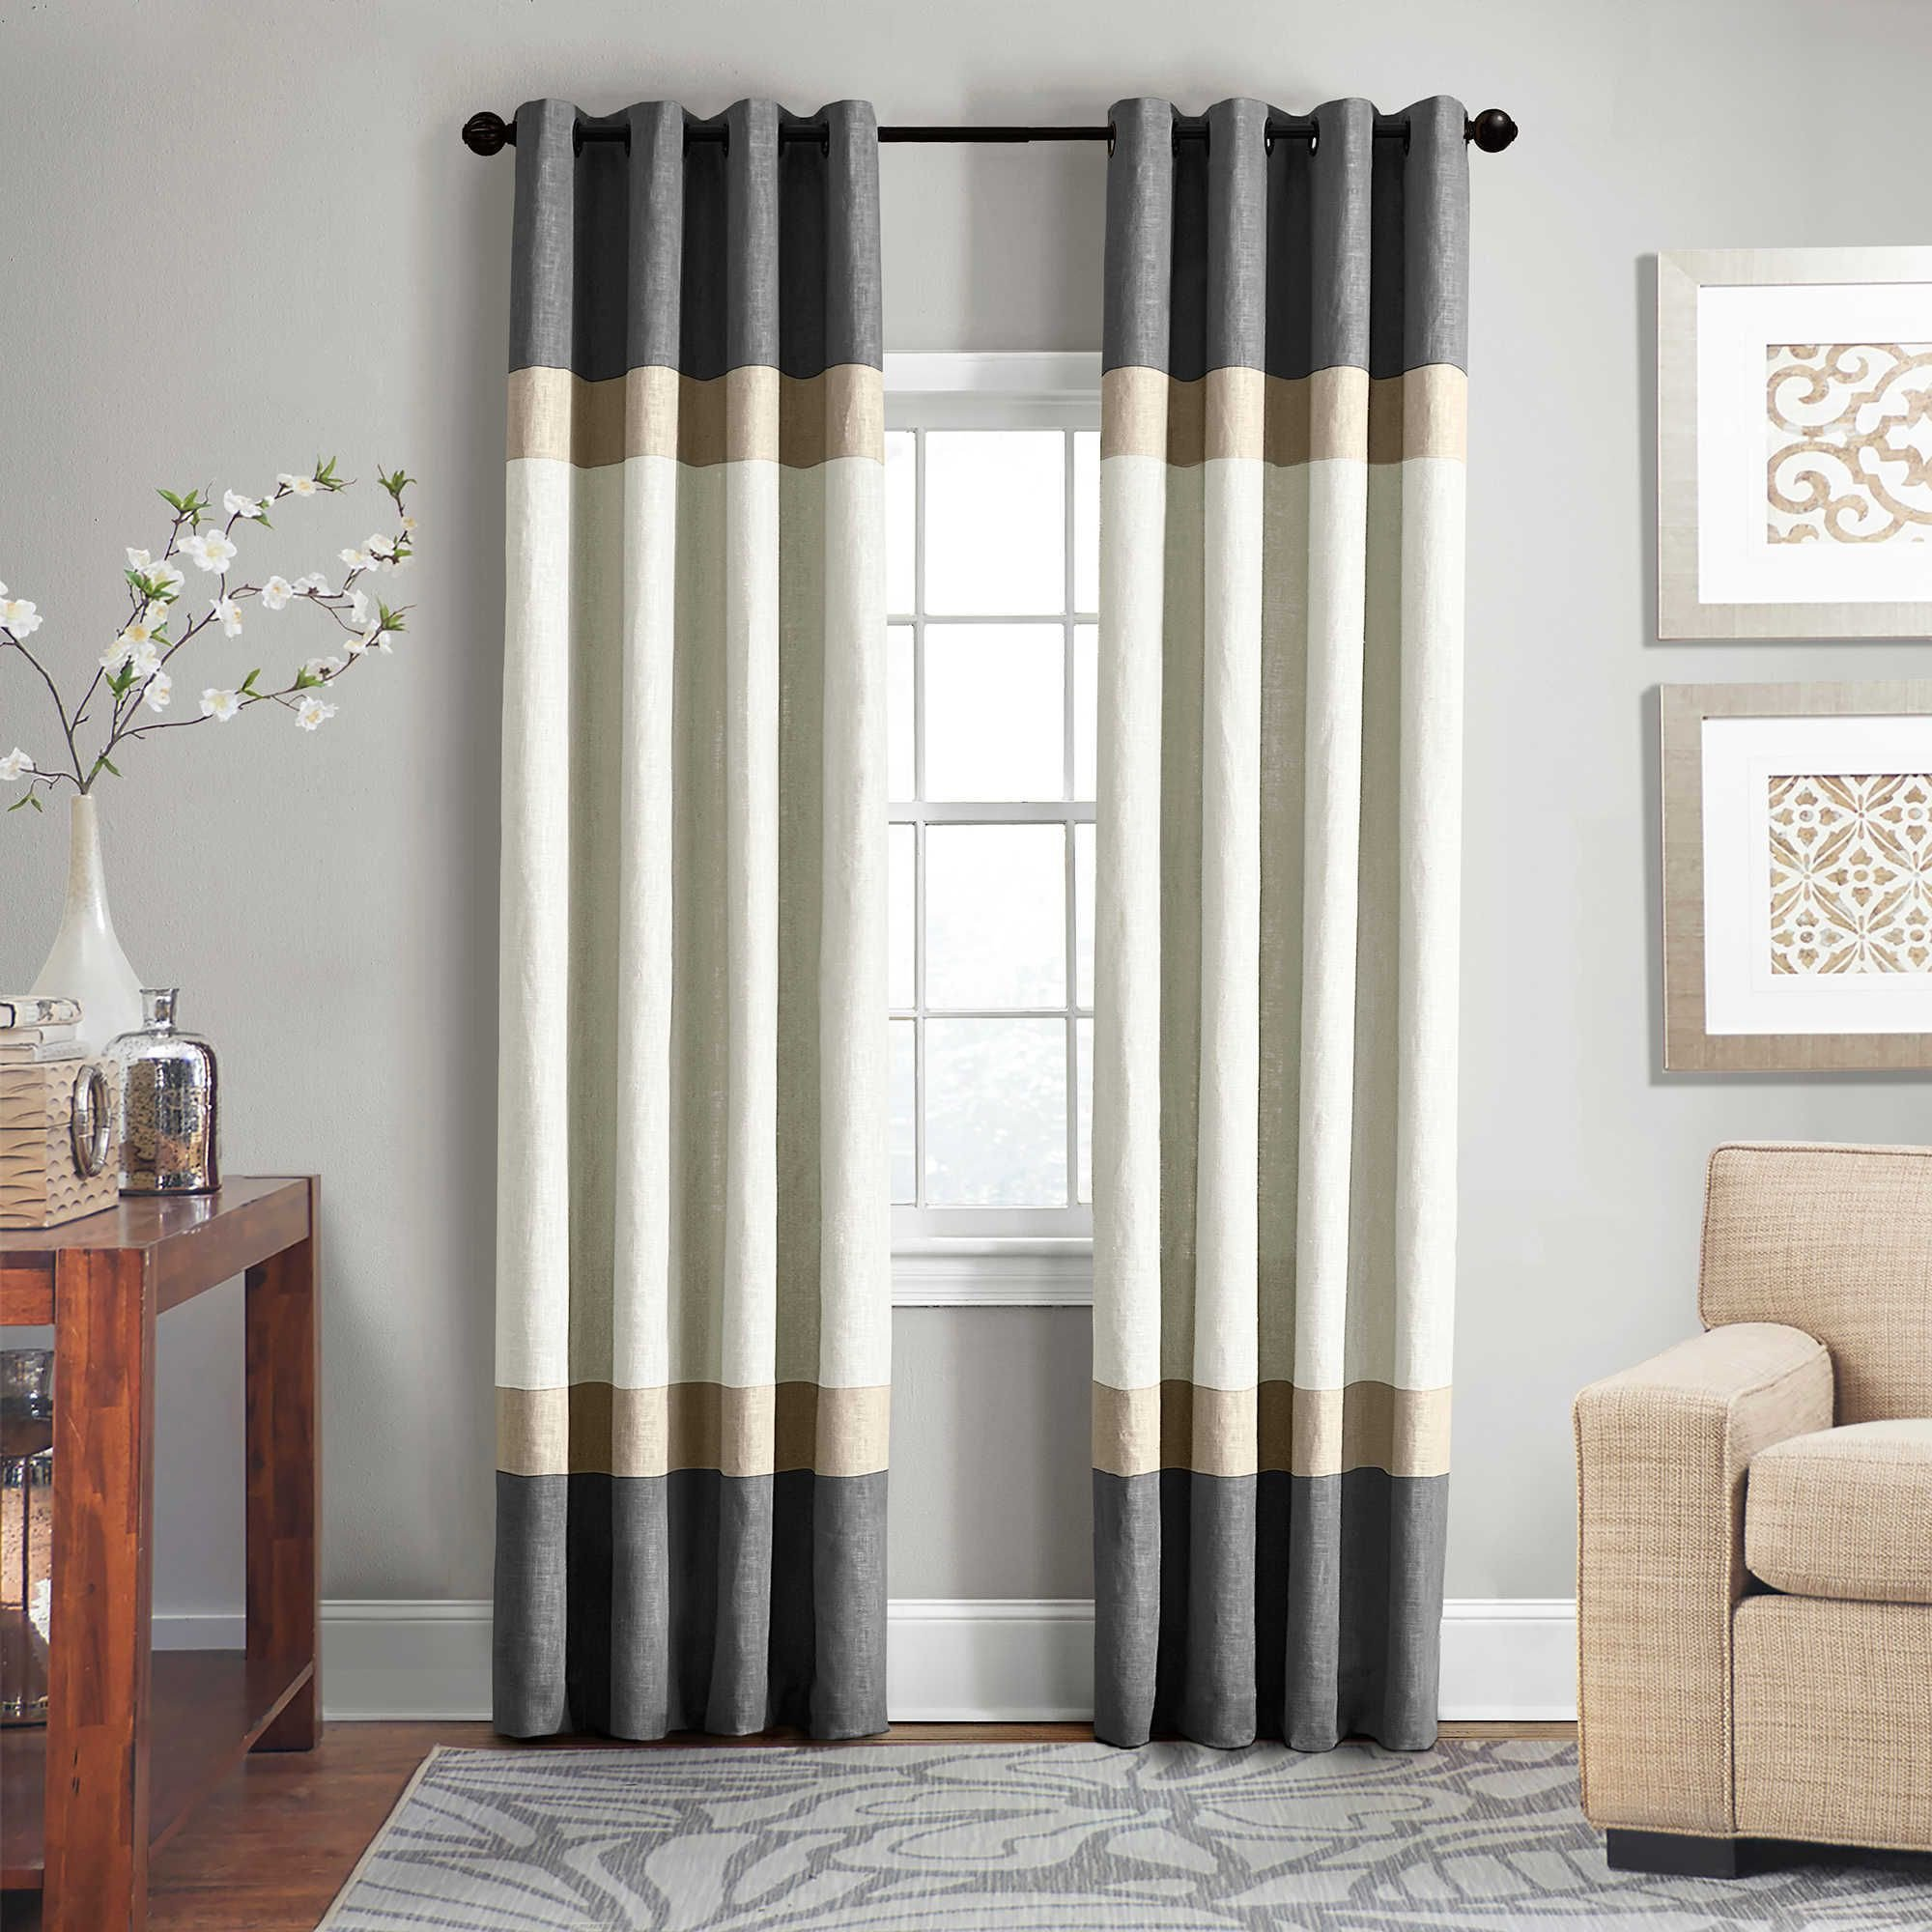 Curtains for Bedroom Windows Fresh Veratex Brooklyn Colorblock Linen 63 Inch Grommet Window